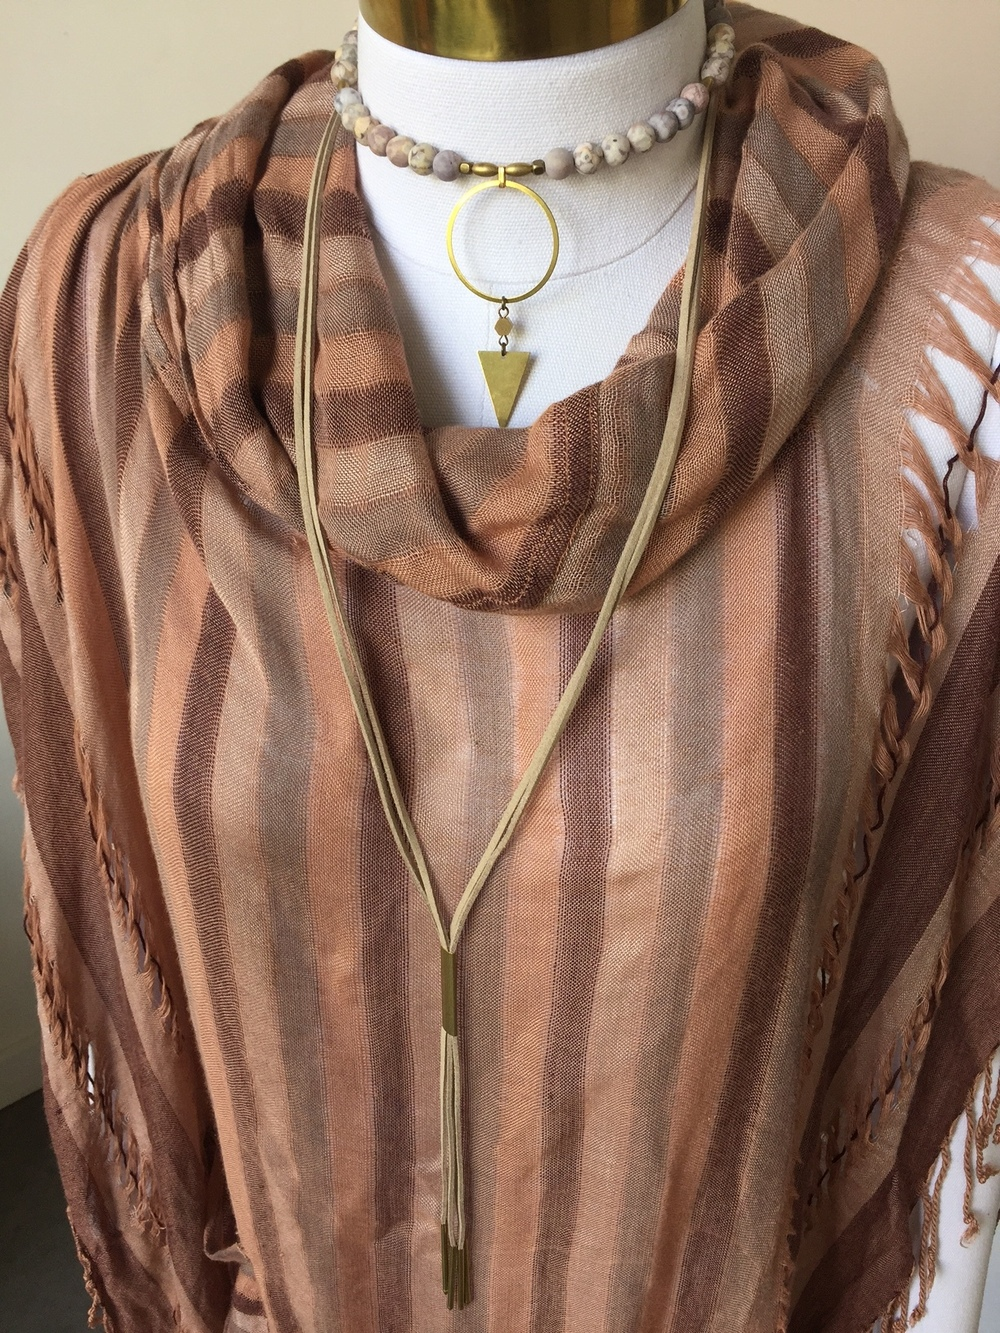 And if you're still looking to keep it a bit boho, try a poncho with one of our bolos and a beaded choker.